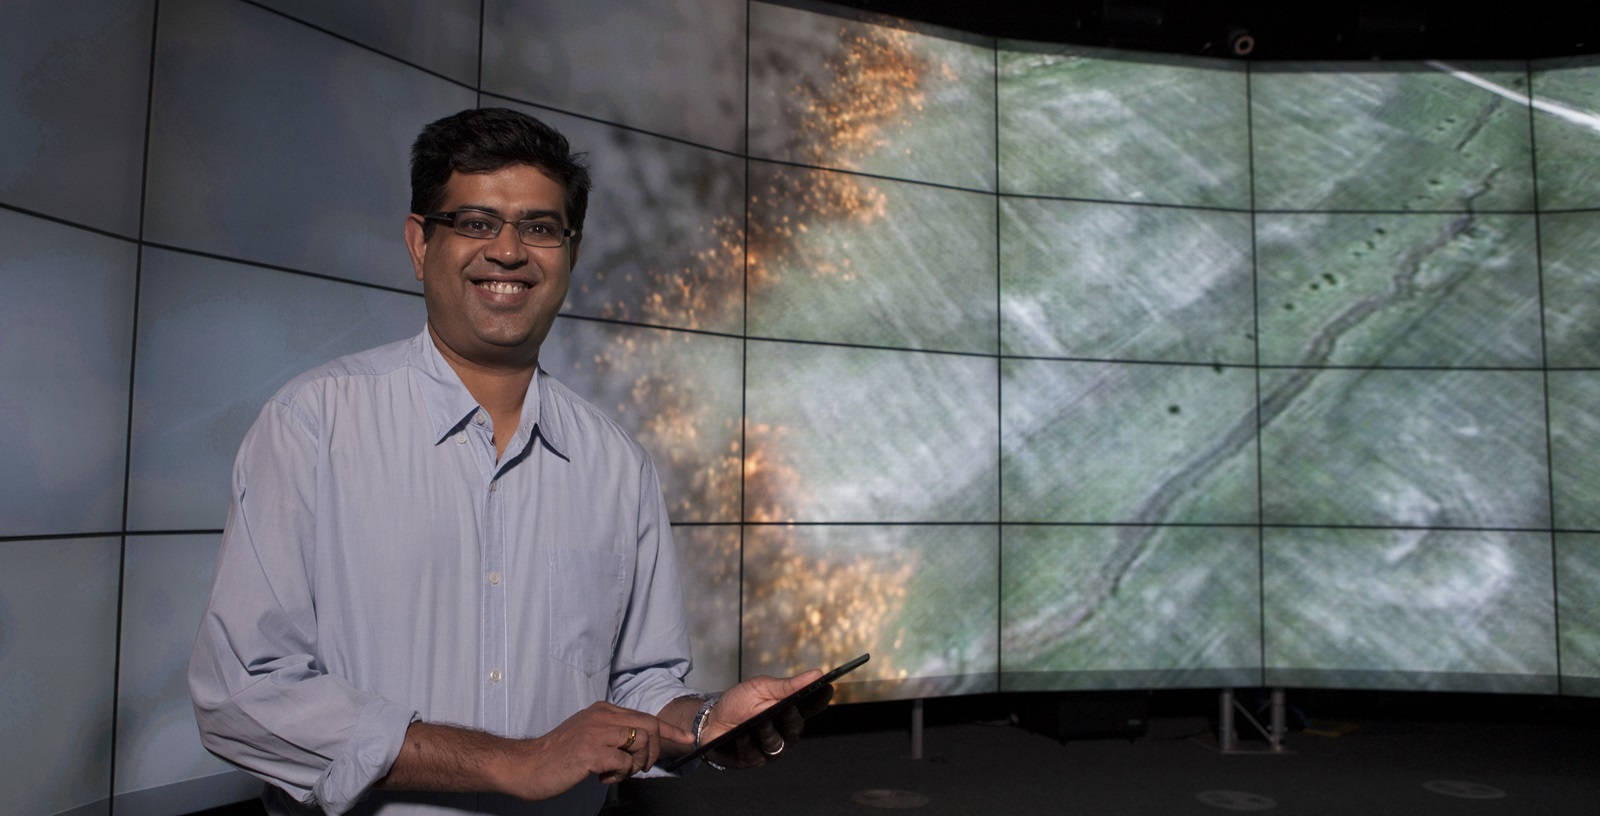 Dr Mahesh Prakash holding a computer tablet in front of a bank of screens showing Sparks software in use.